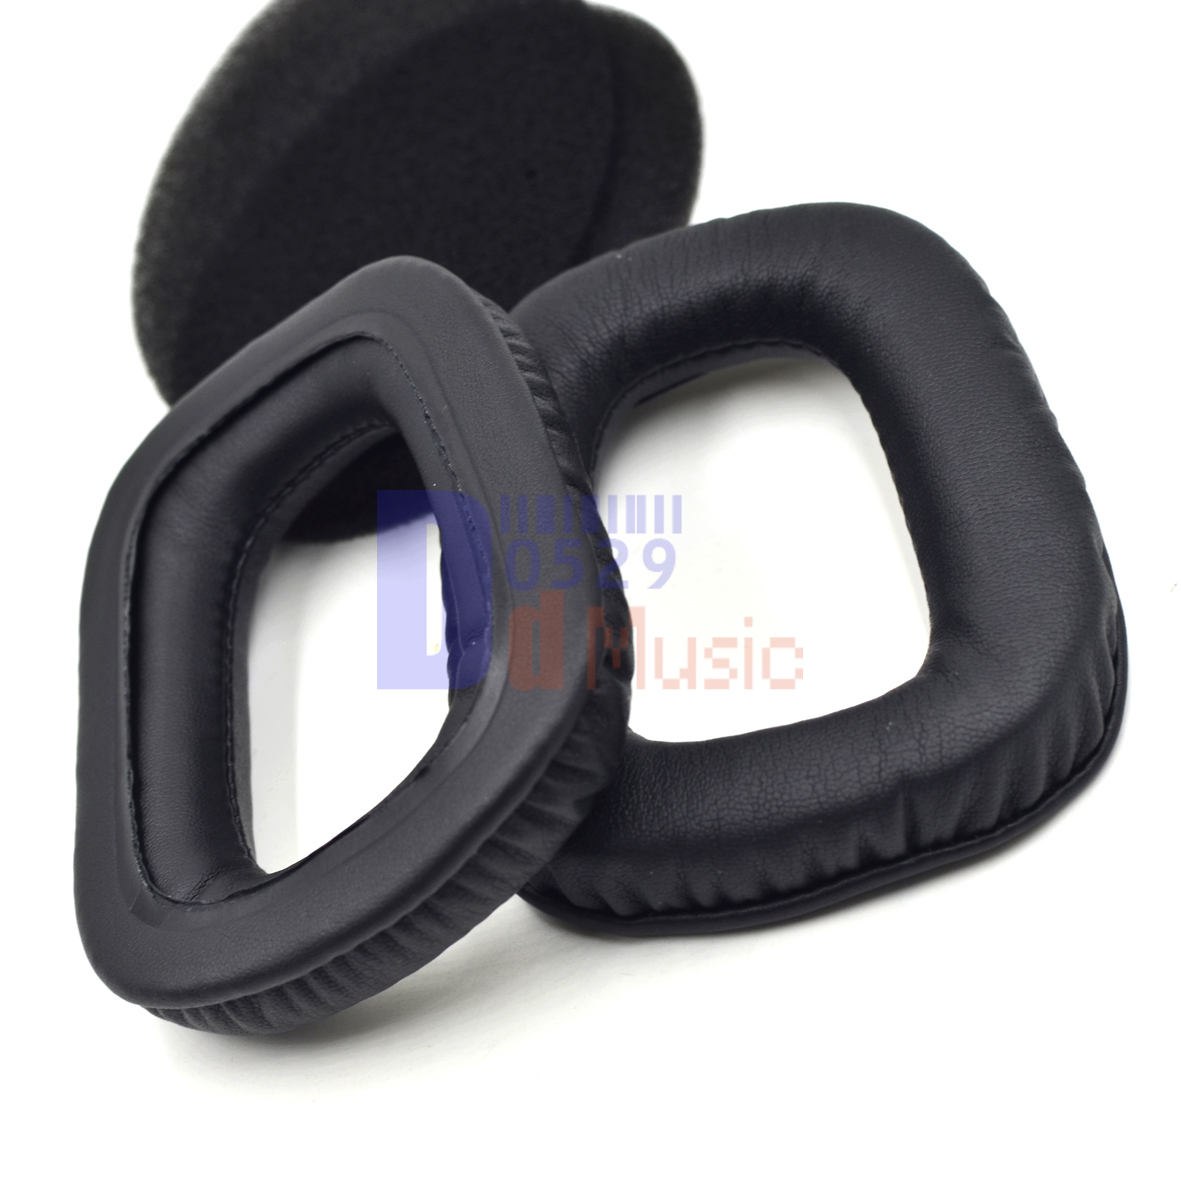 Details about Replace ear pads ear cushion for logitech G130 G230 G430 G930 F450 F headphones